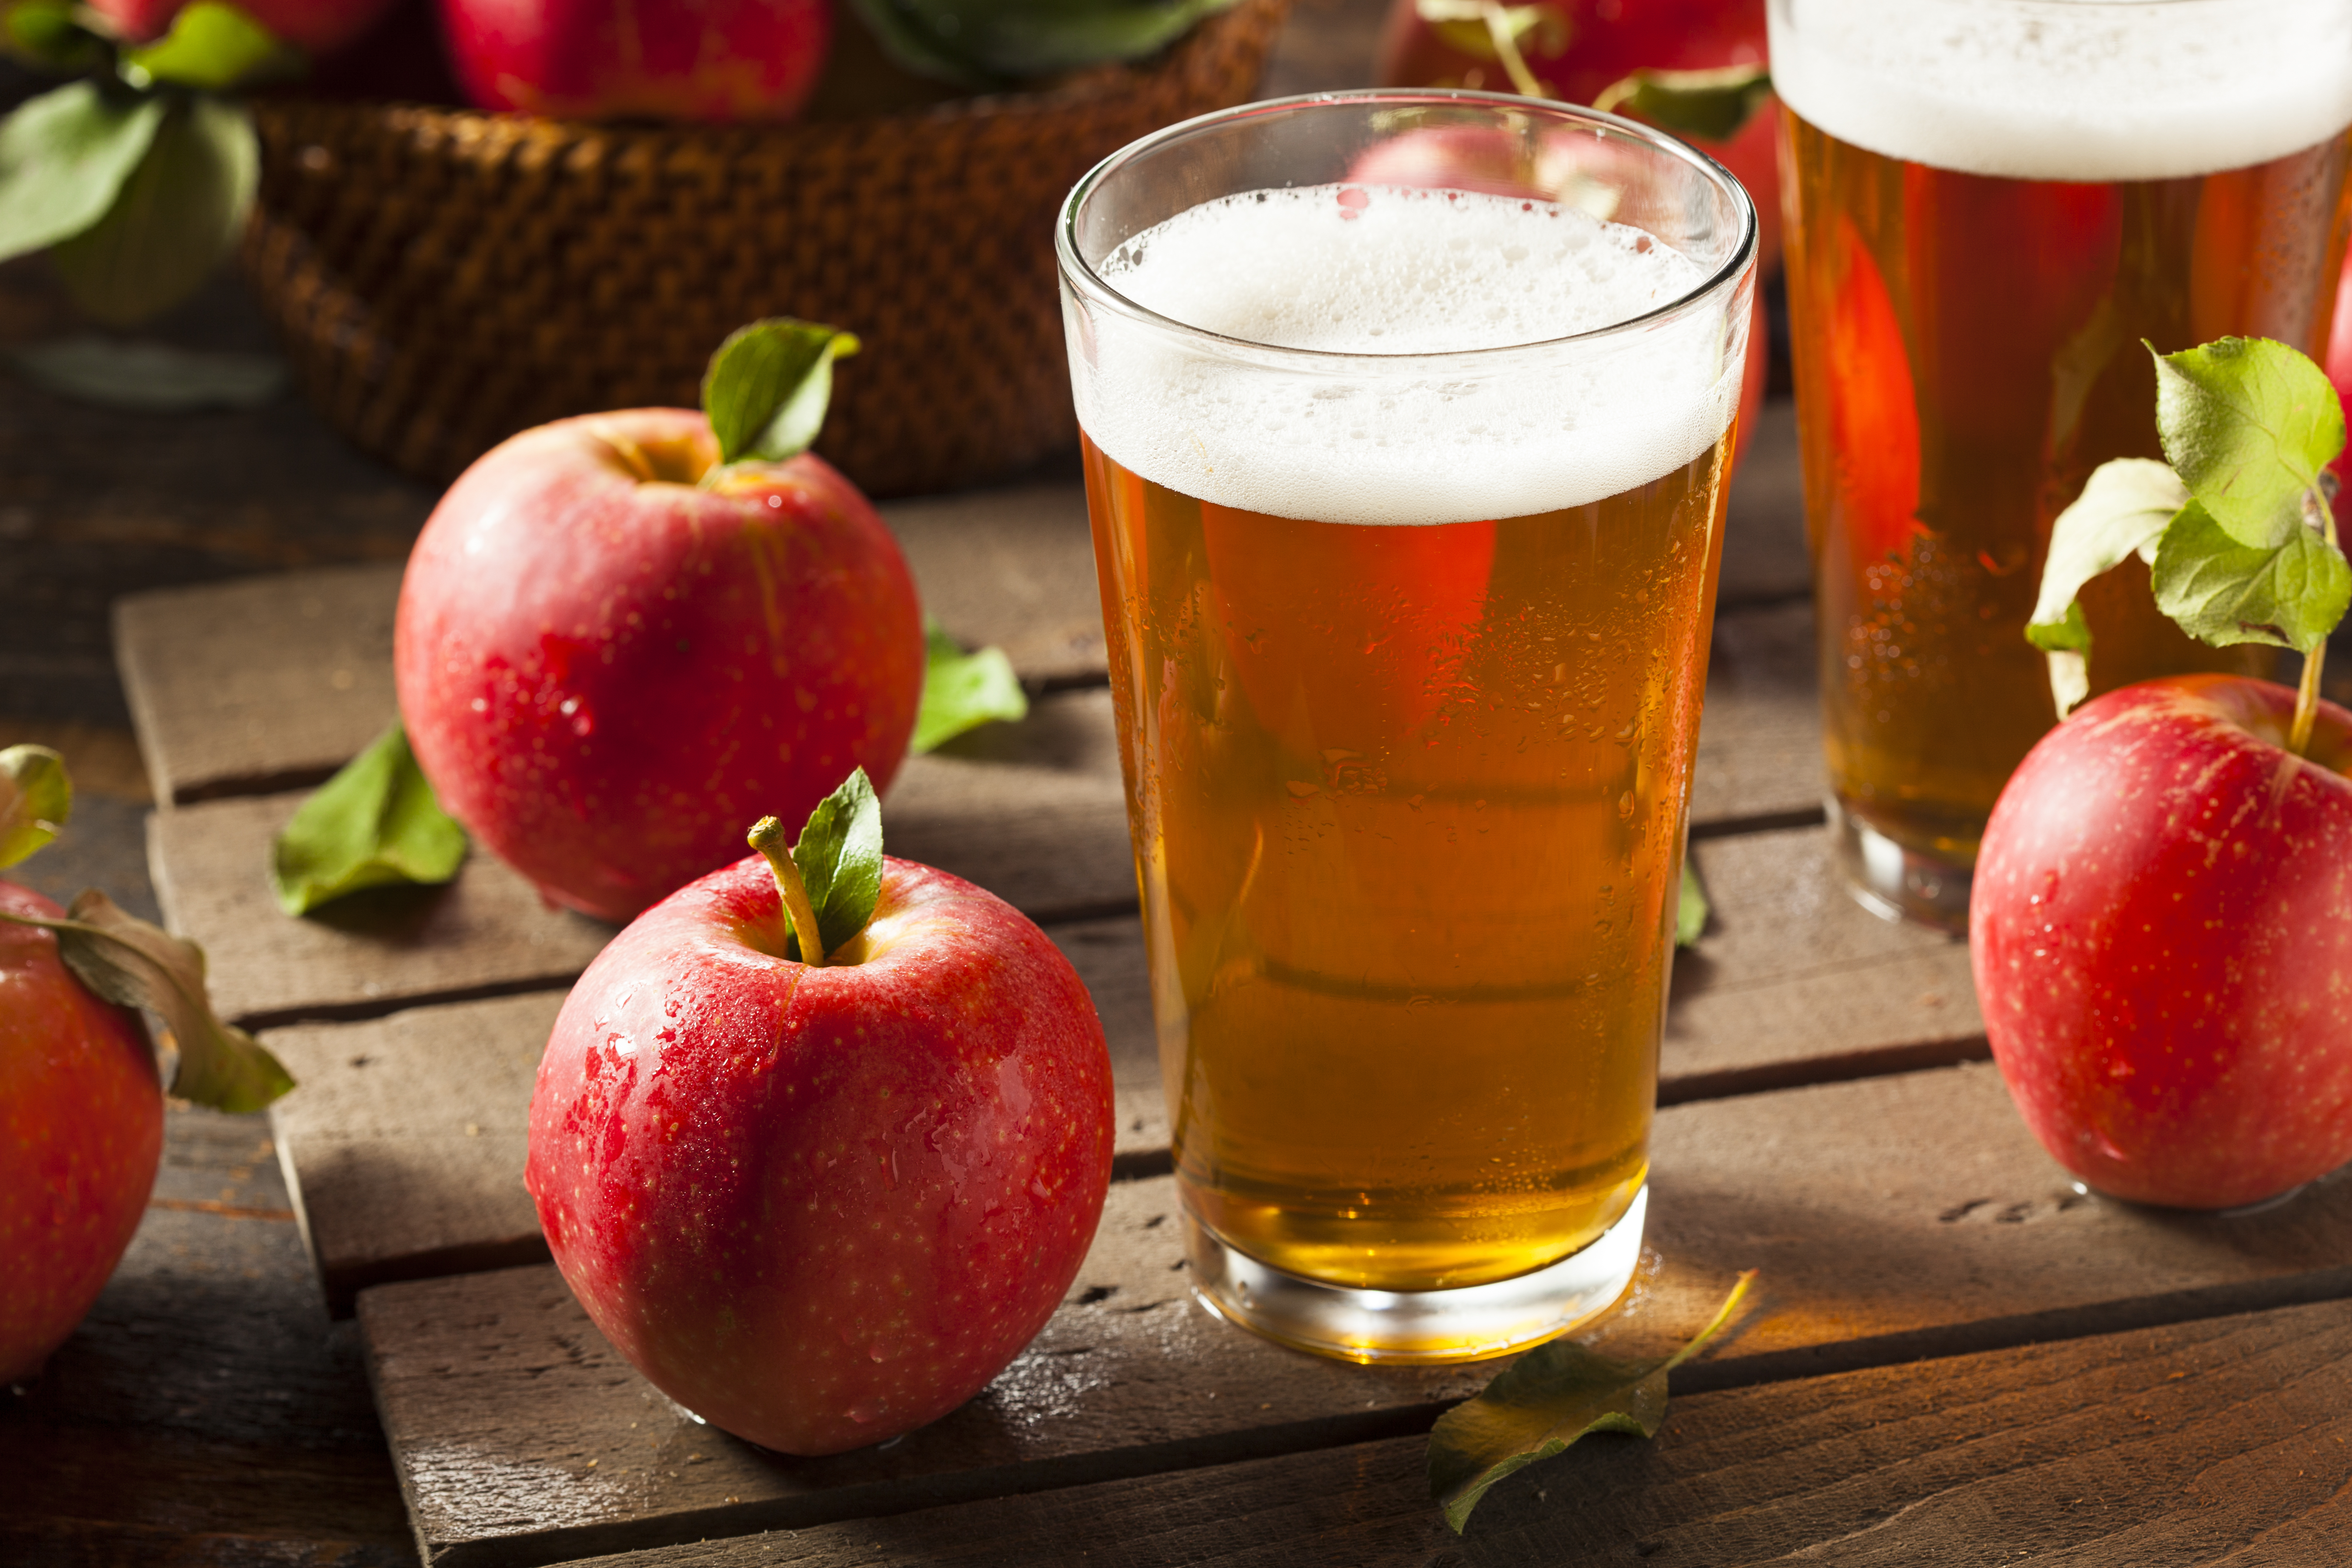 Cider 101: A Guide to the Alcoholic Beverage, Plus Some Cans to Get You Started